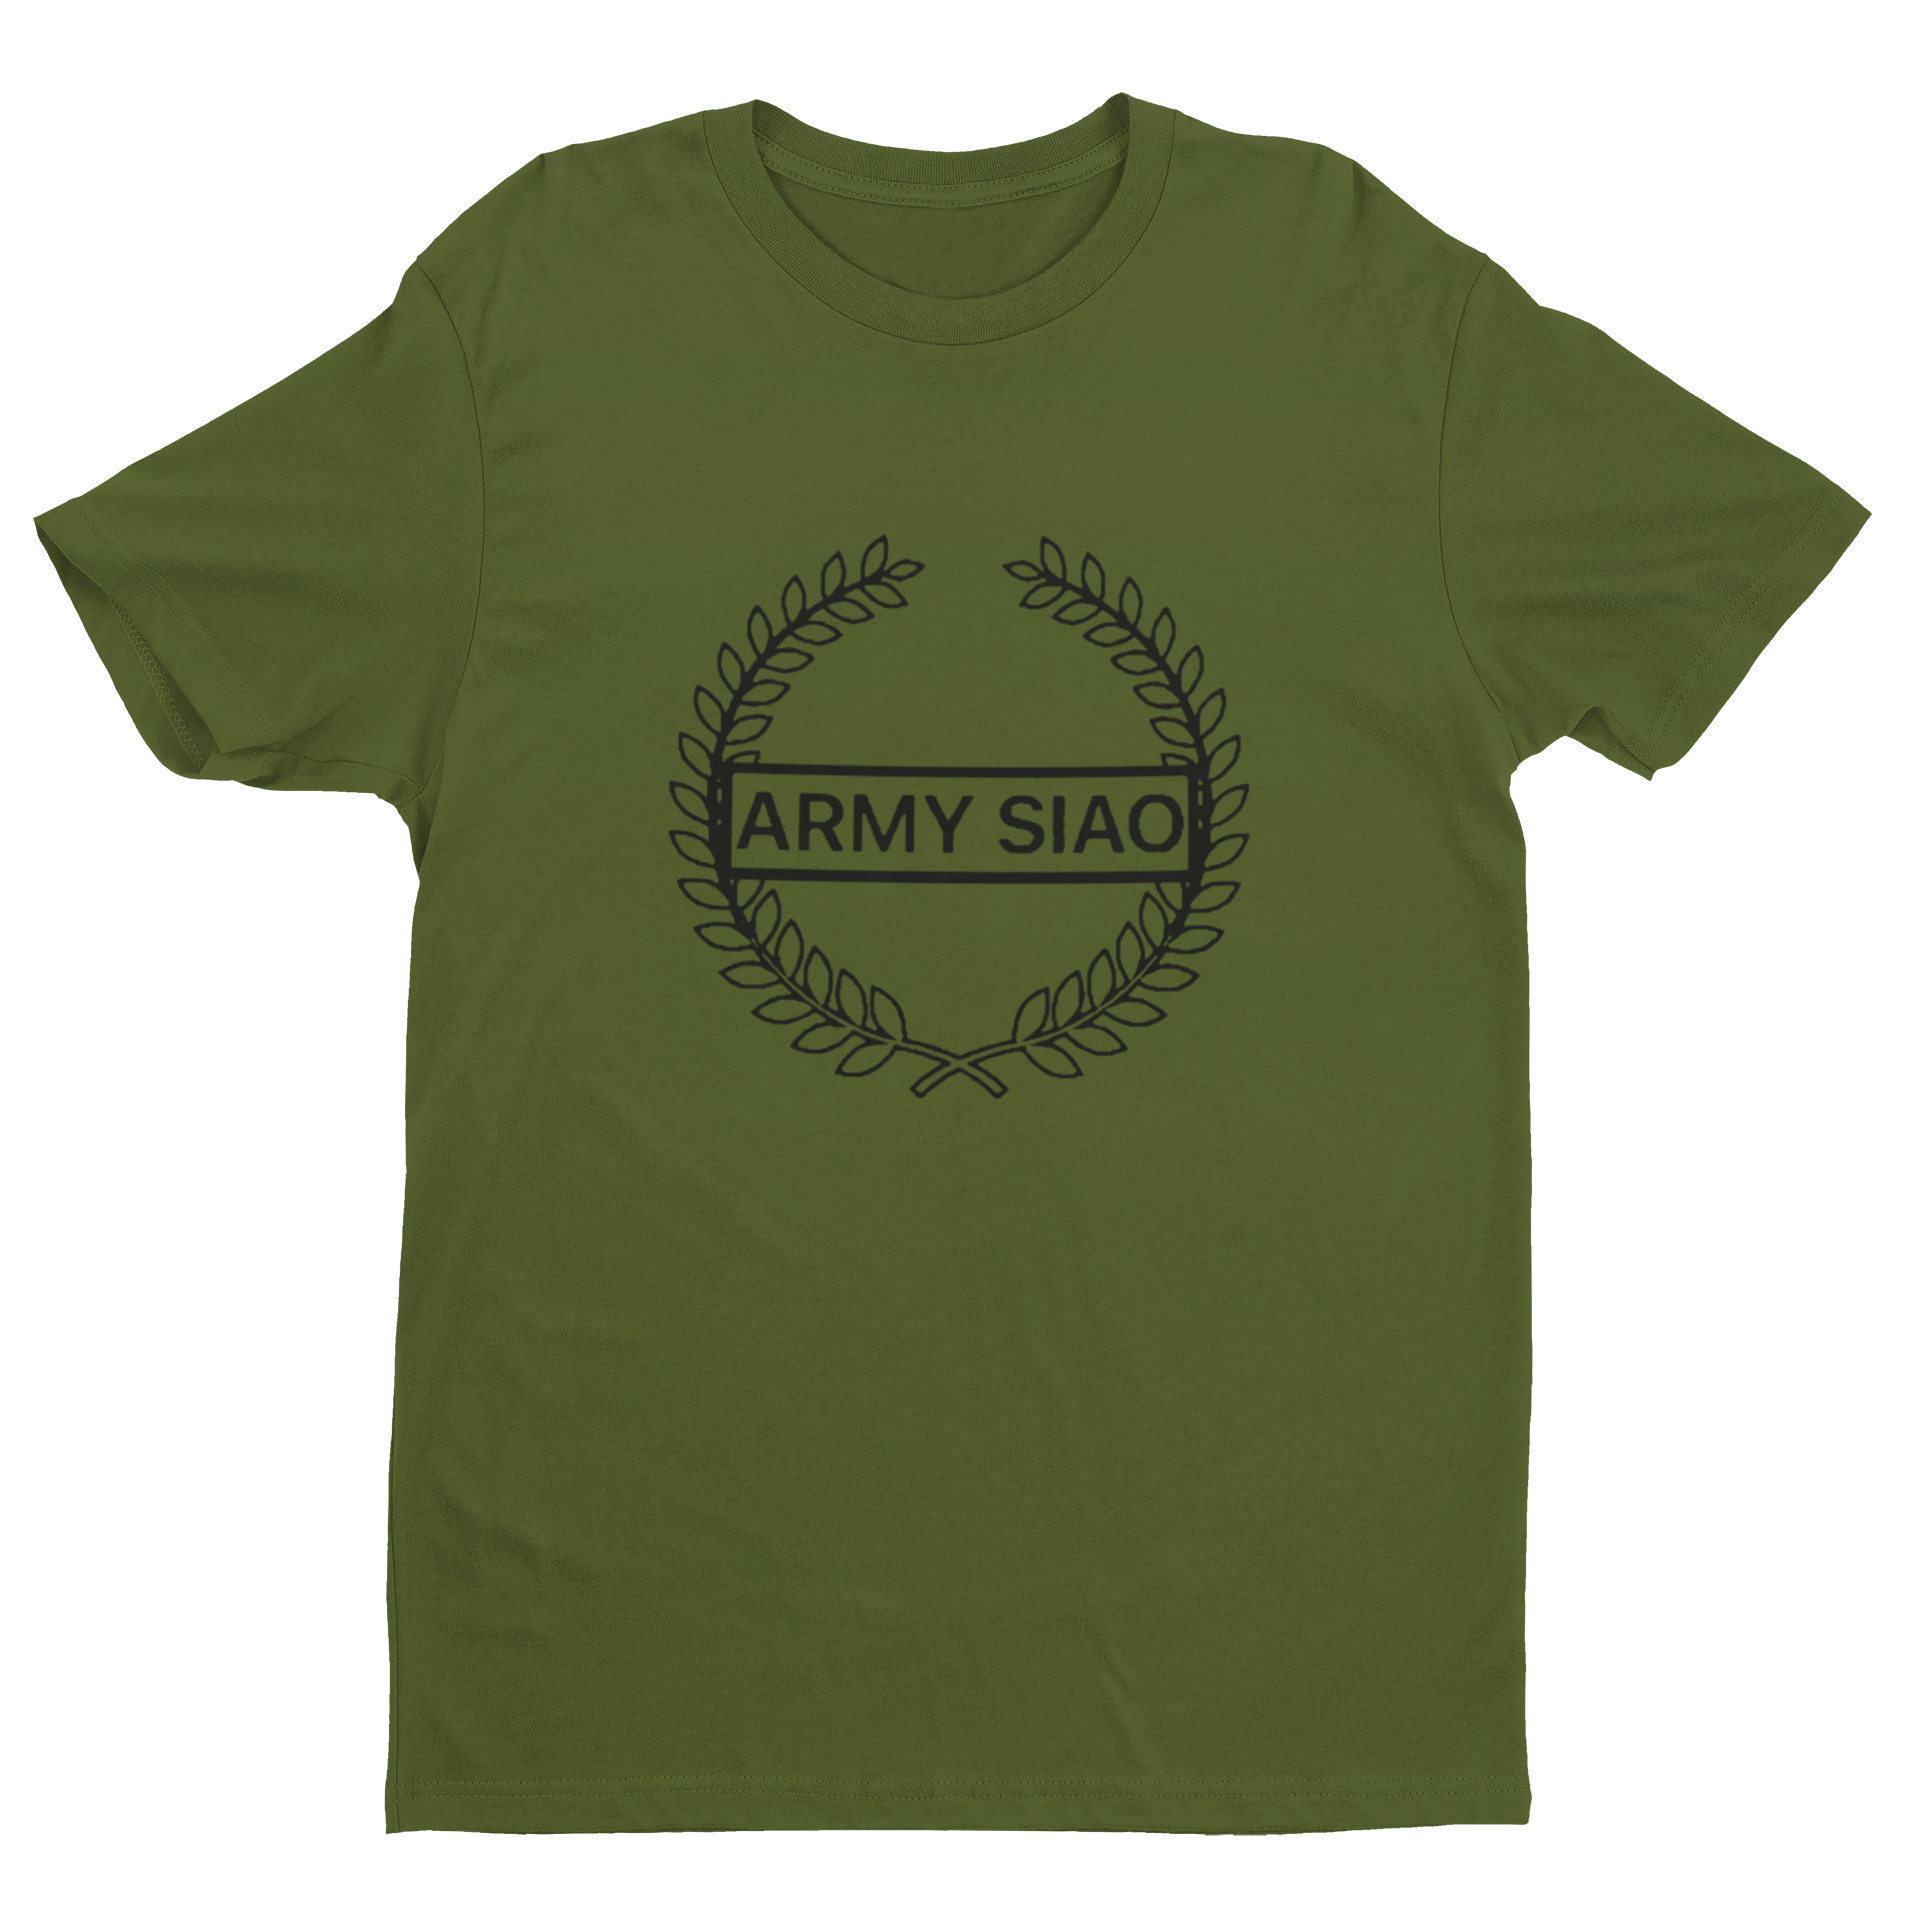 Army Siao T-Shirt Crew Neck S-Sleeve T-shirt